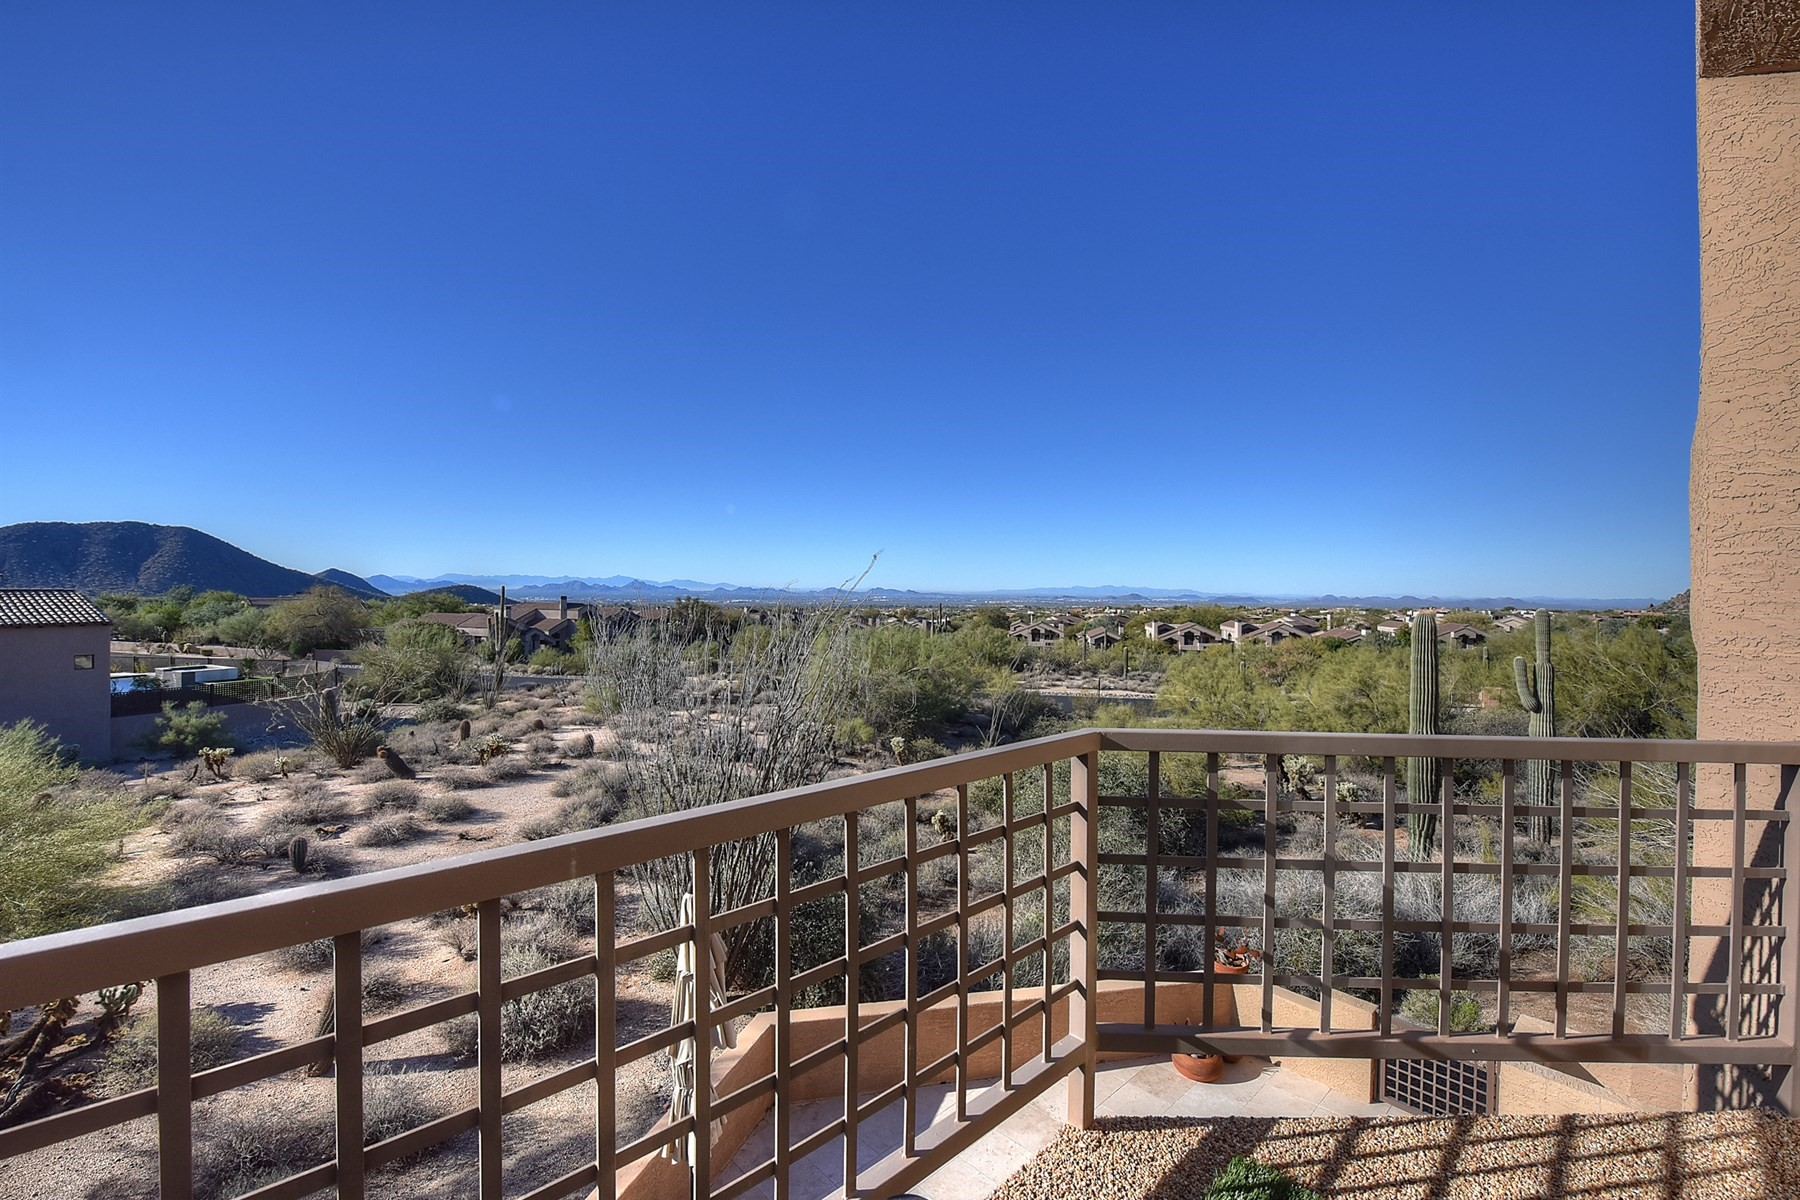 Single Family Home for Sale at Stunning views at this private townhouse located in Skye Top at Troon Village 25555 N Windy Walk Dr #11 Scottsdale, Arizona, 85255 United States